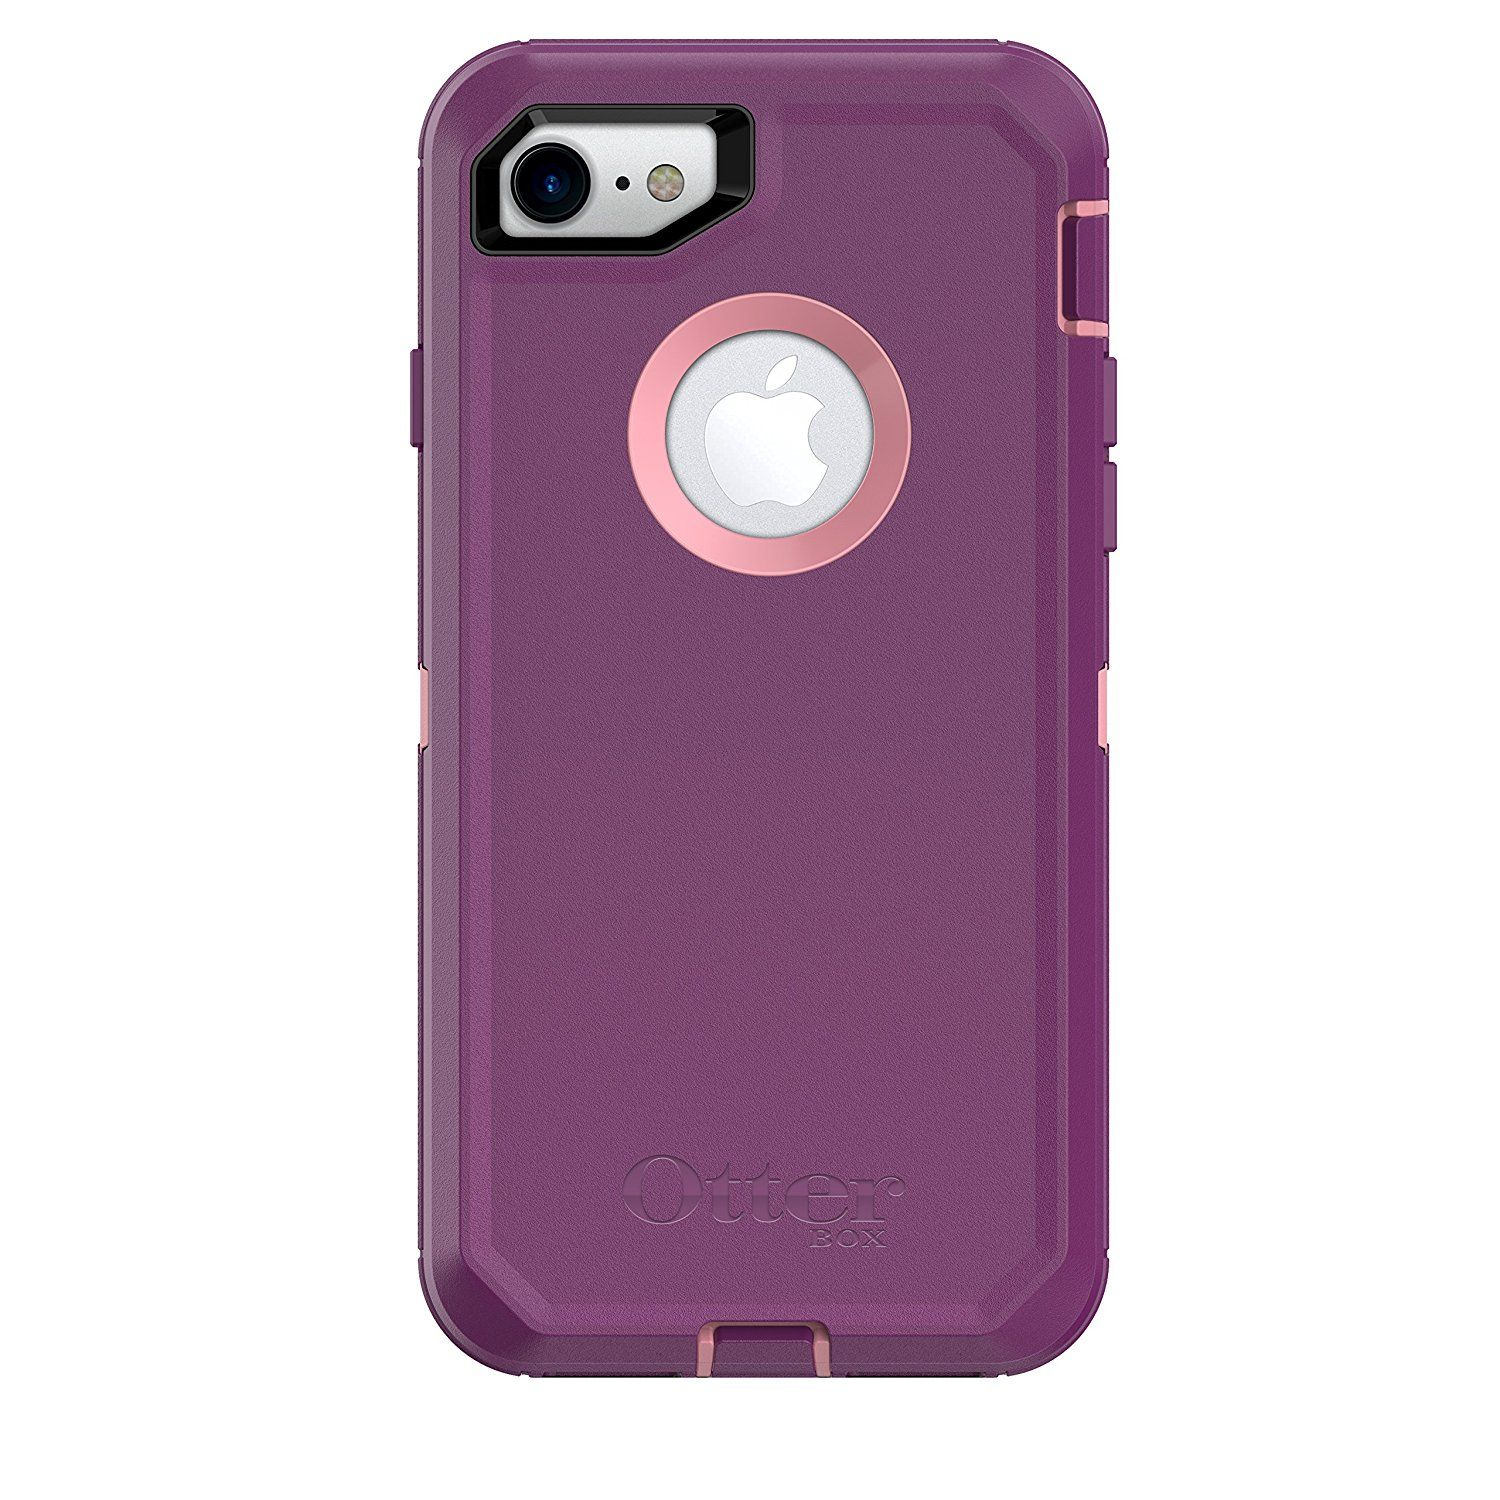 Otterbox defender series case for iphone 8 iphone 7 not